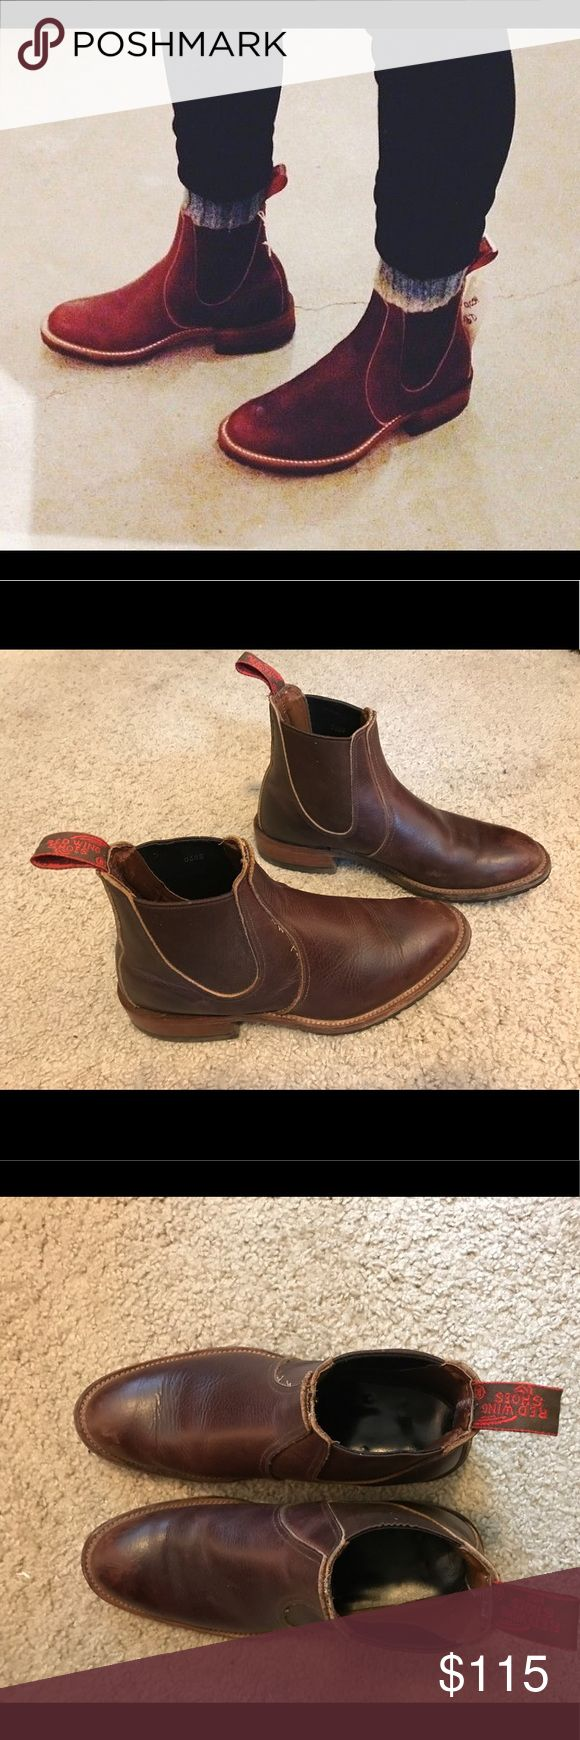 Red Wing Chelsea Rancher leather boots These are men's size 7, but fit women's size 9. They are in good condition, with minor wear including some scuffs on the toes (as shown in pictures). Personally I think the scuffs aren't very noticeable, and these boots look good with a slightly worn look. They are so cute and I wish I could keep them, but they are just slightly too small on me (I wear women's 9.5). Red Wing Shoes Shoes Ankle Boots & Booties